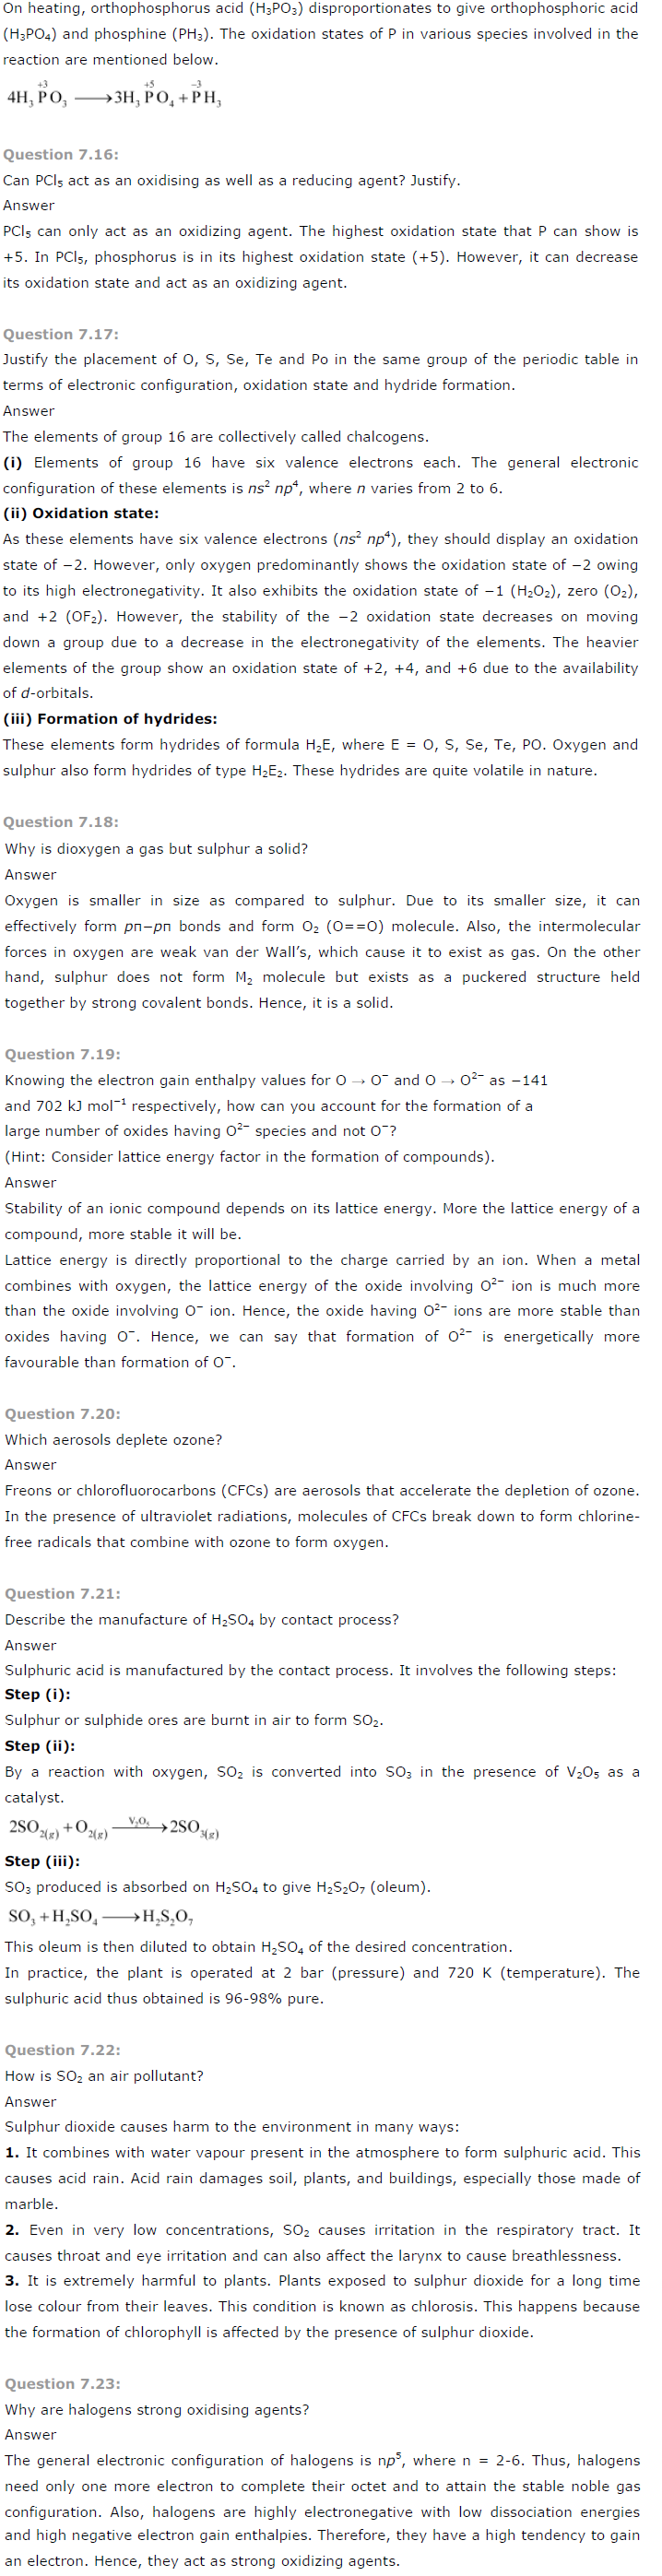 NCERT Solutions for Class 12 Chemistry Chapter 7 – The p Block